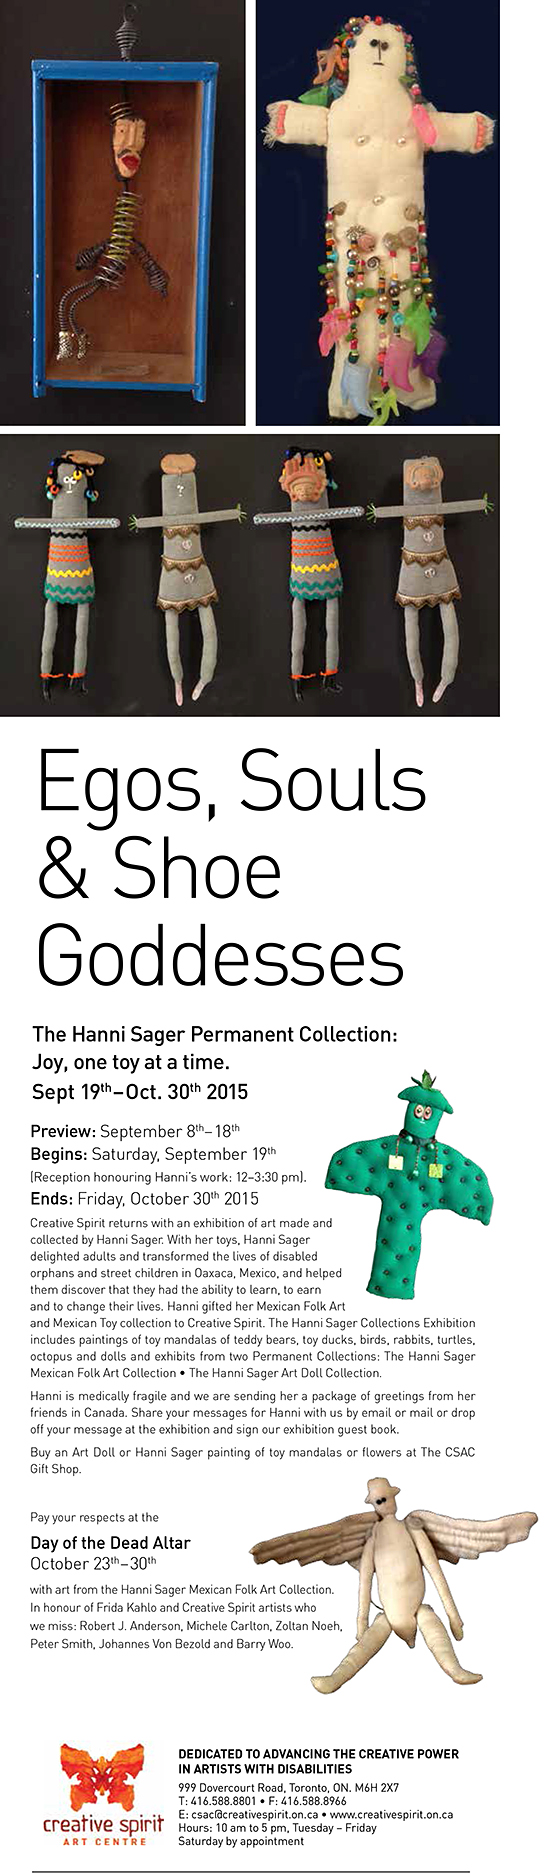 Hanni Sager Permanent Collection Event - Preview Sep.8th to 18th, Reception: Saturday September 19th 12 to 3:30 pm, Ends October 30th, 2015.